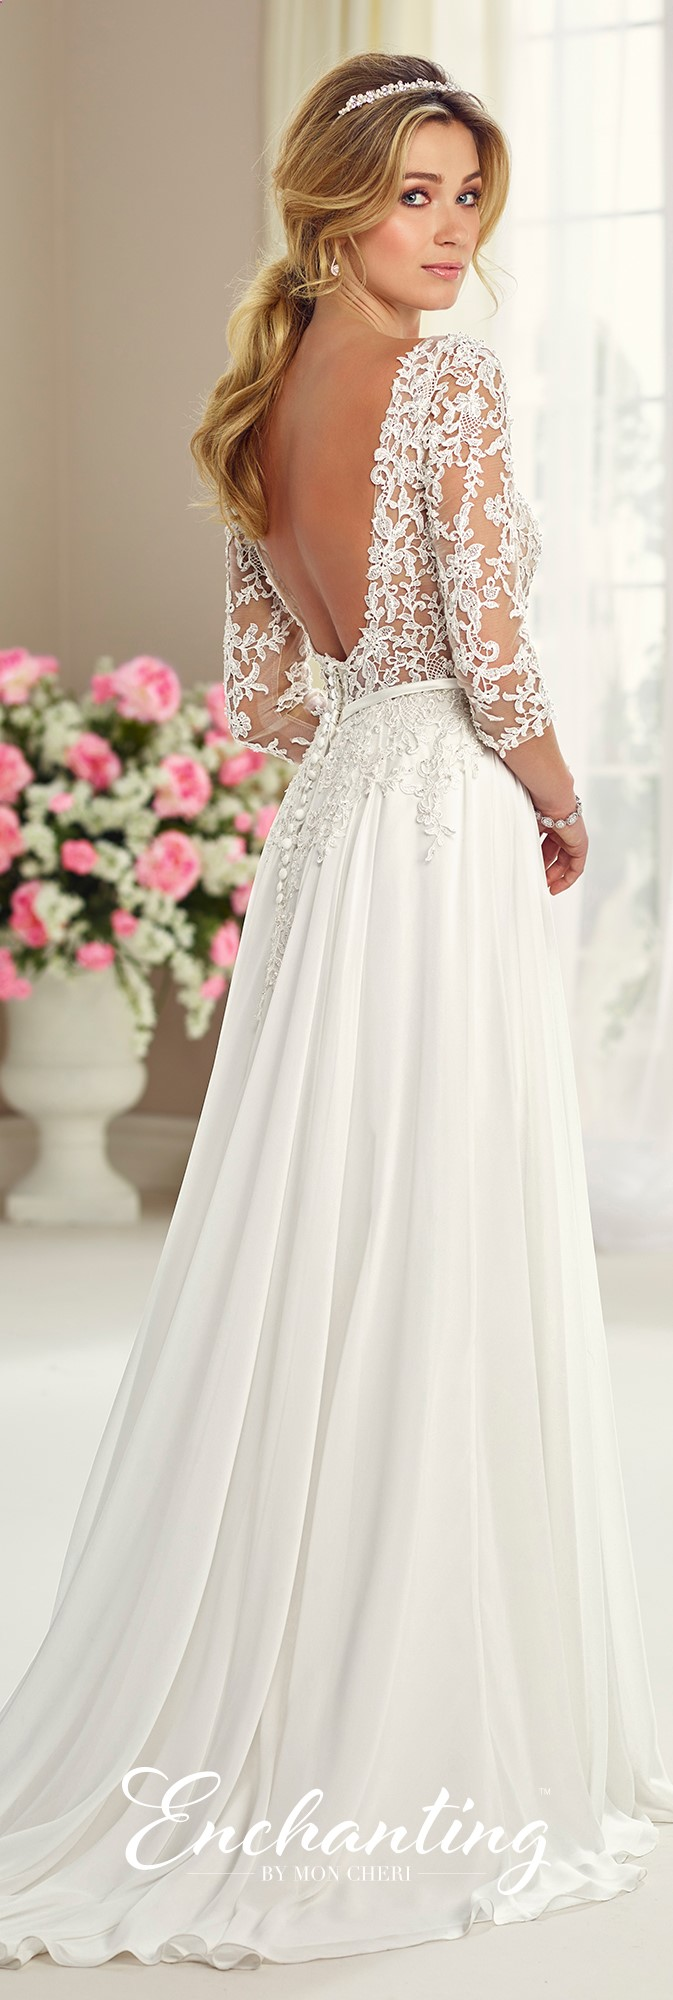 Chiffon wedding dresses  Enchanting by Mon Cheri Fall  Collection  Style